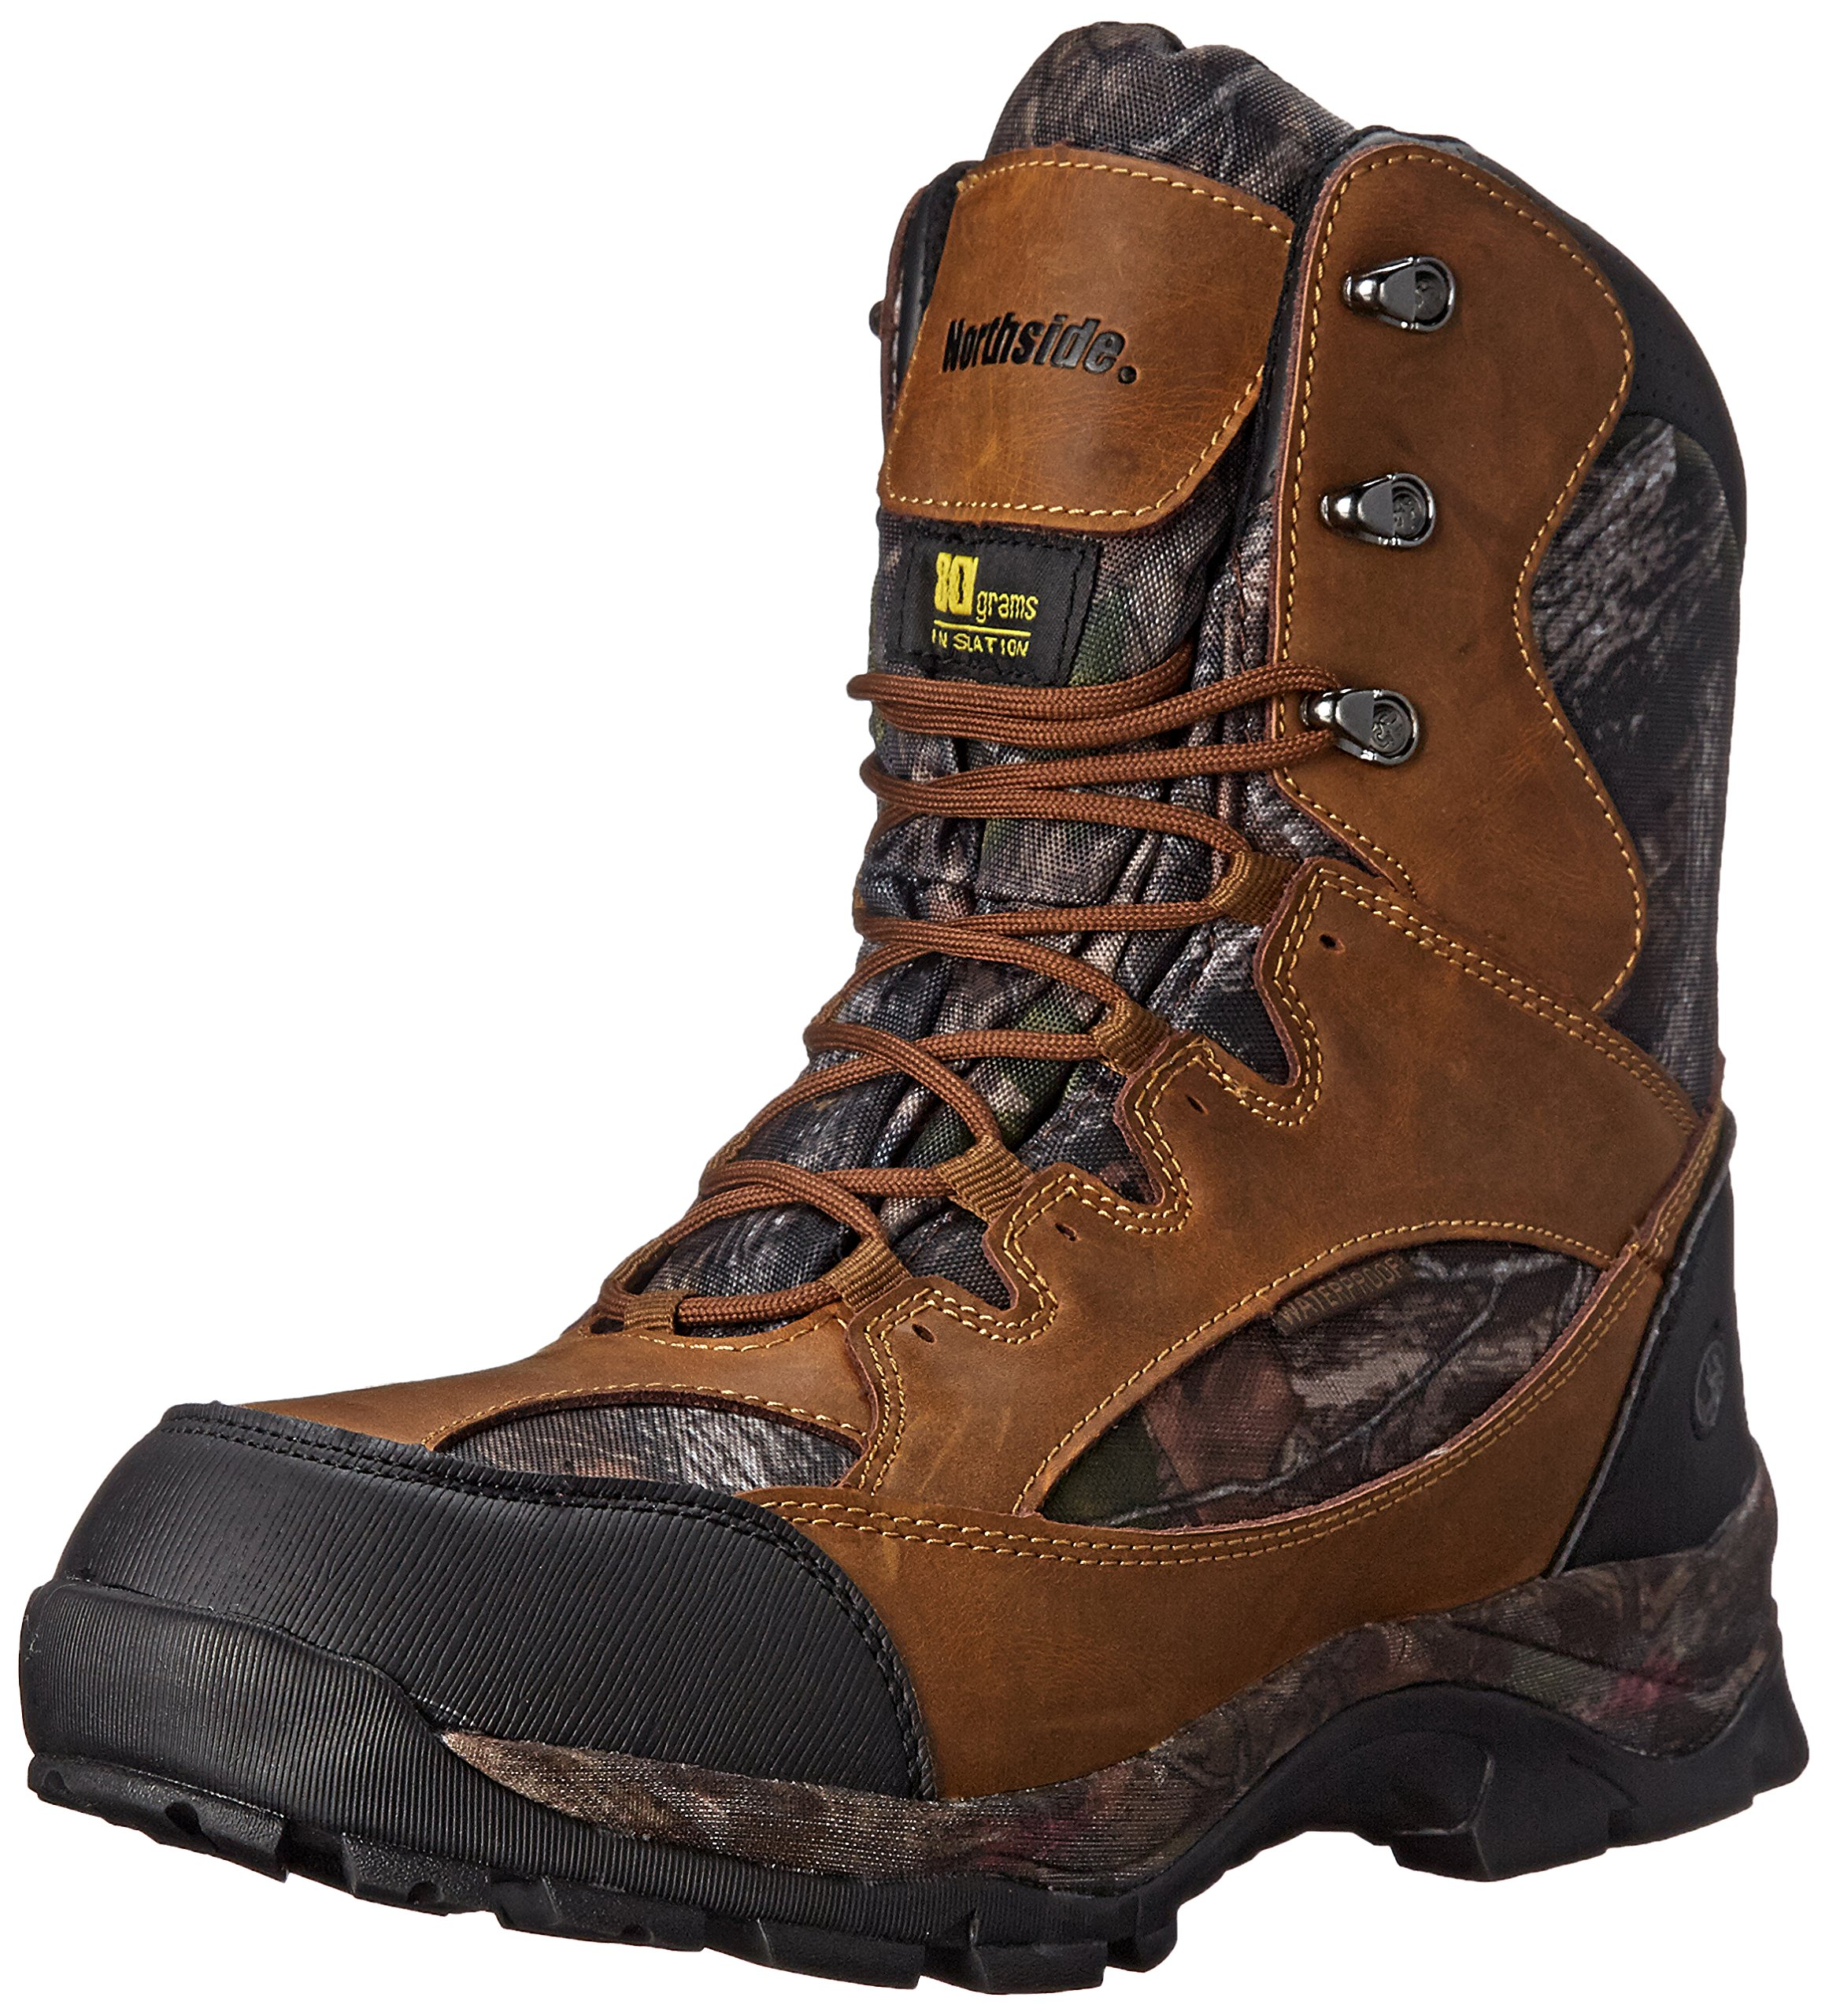 Northside Men's Renegade 800 Hunting Boot, Tan Camo, 11 M US